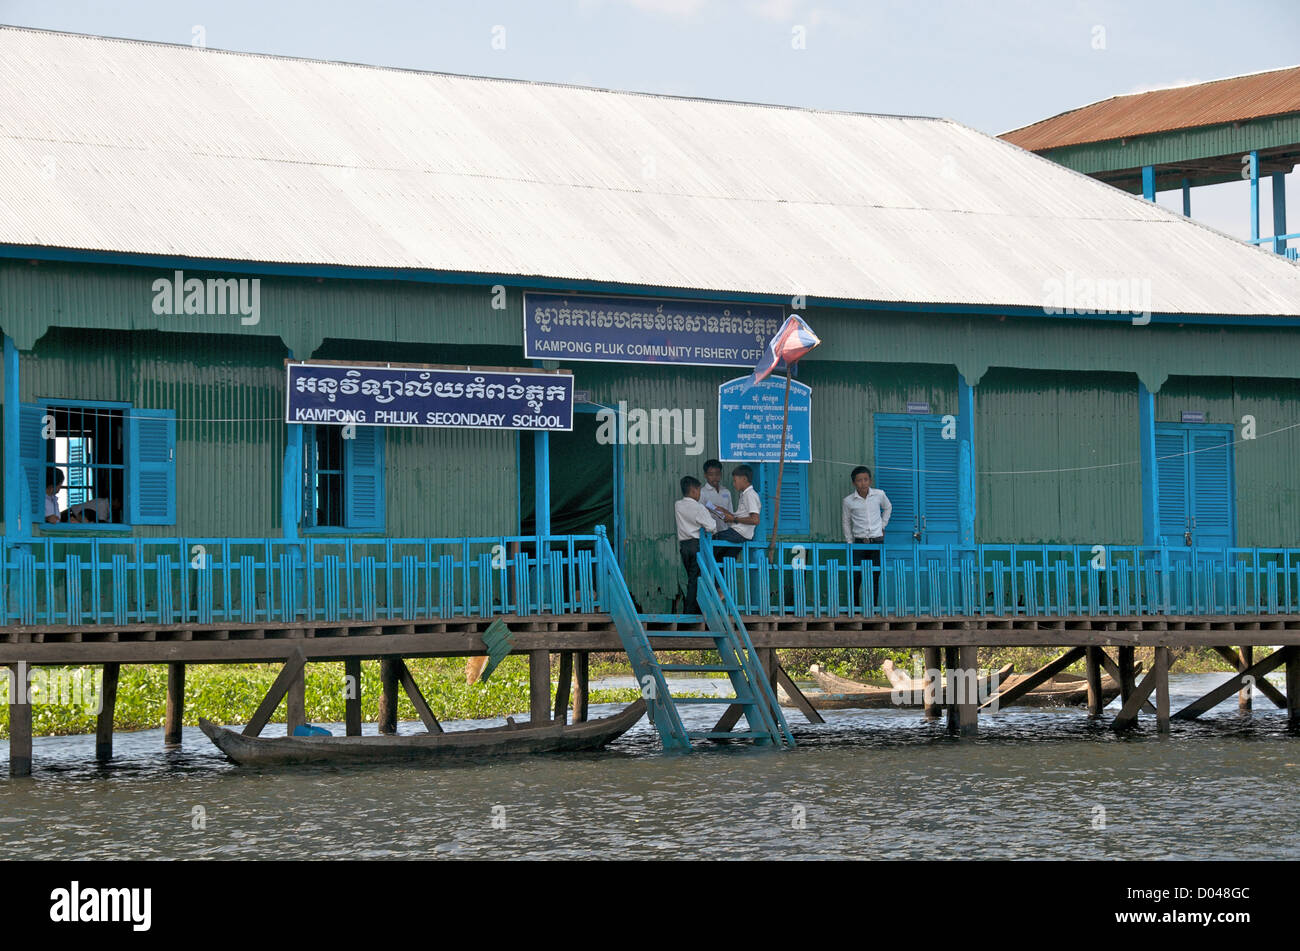 Kampong Phluk secondary school and Kampong Phluk community fishery office Tonle Seap lake Cambodia - Stock Image